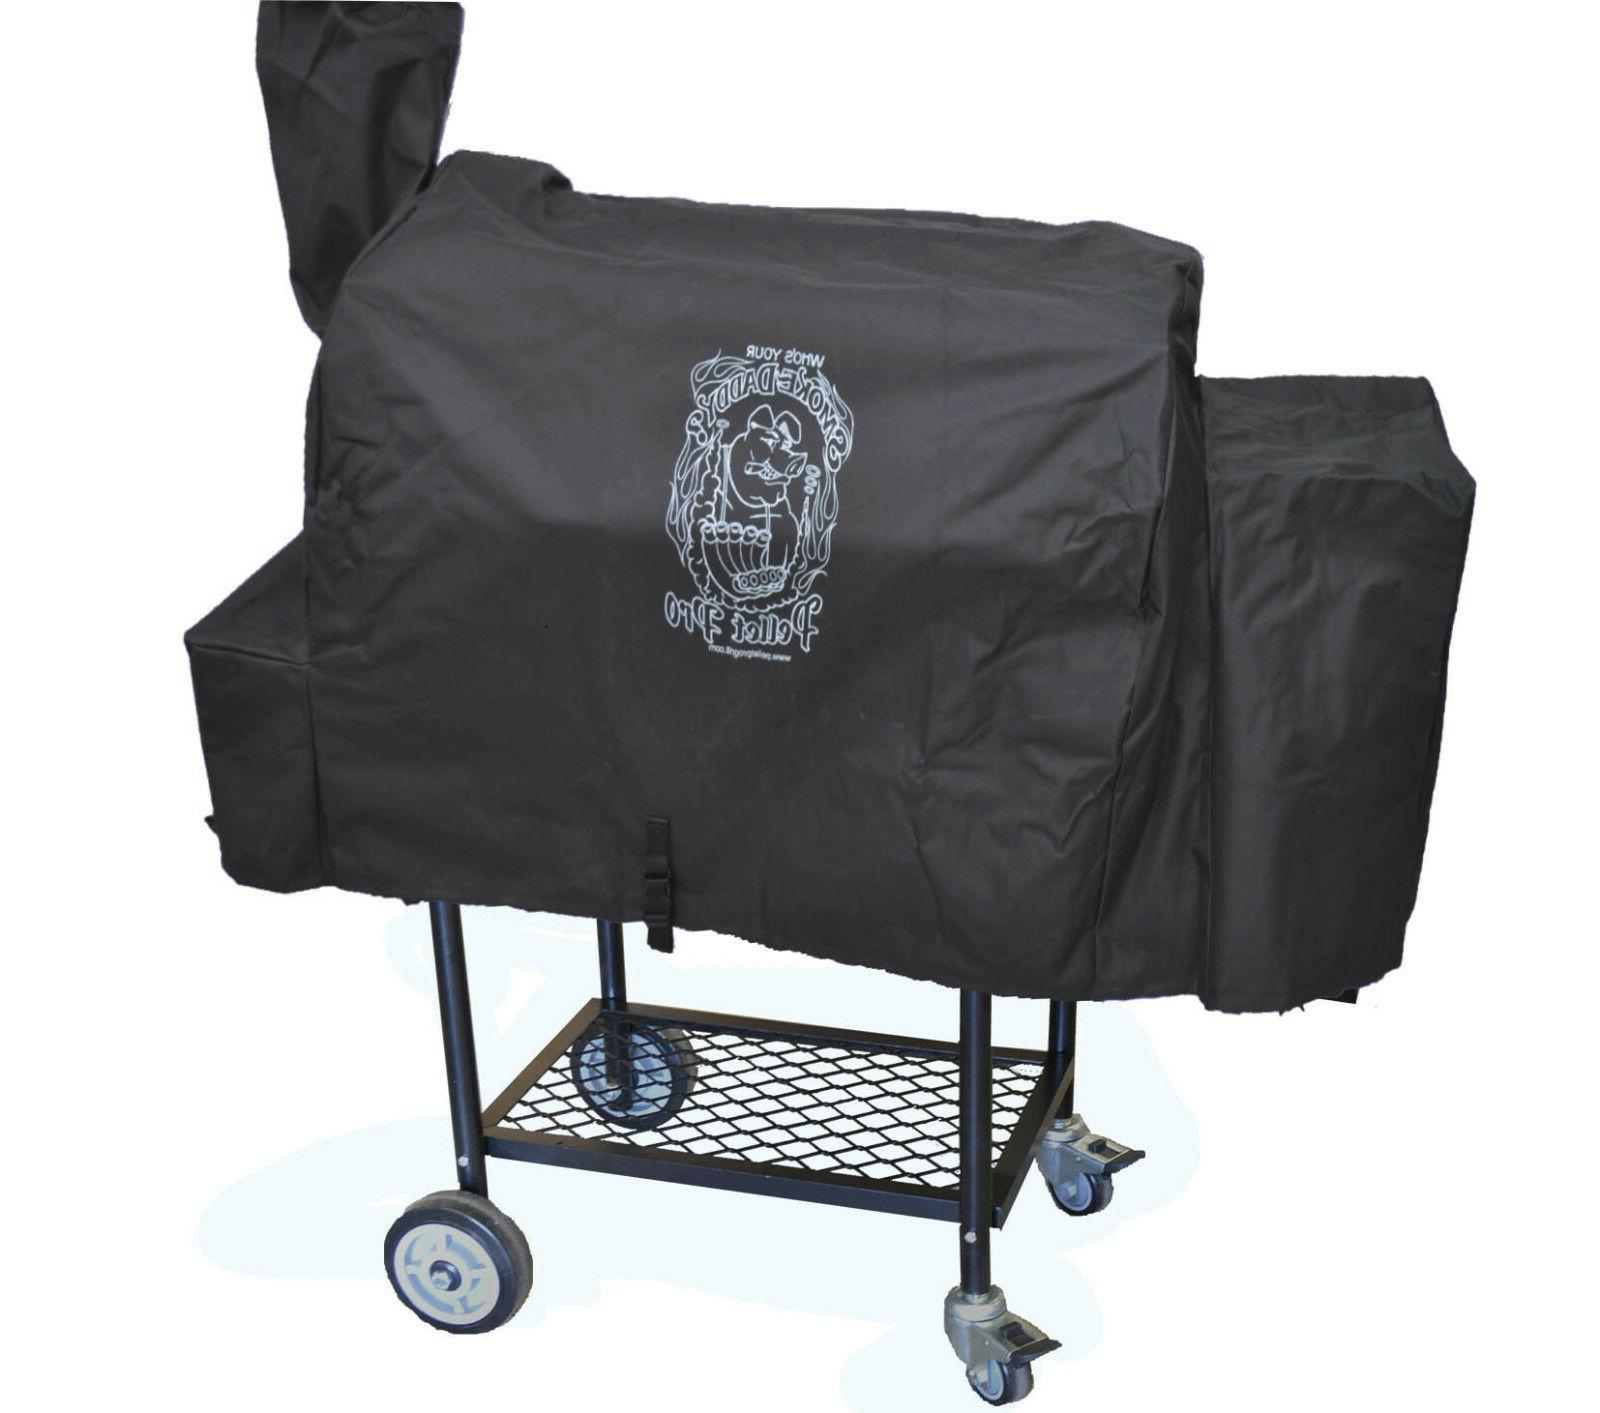 grill cover fits any grills